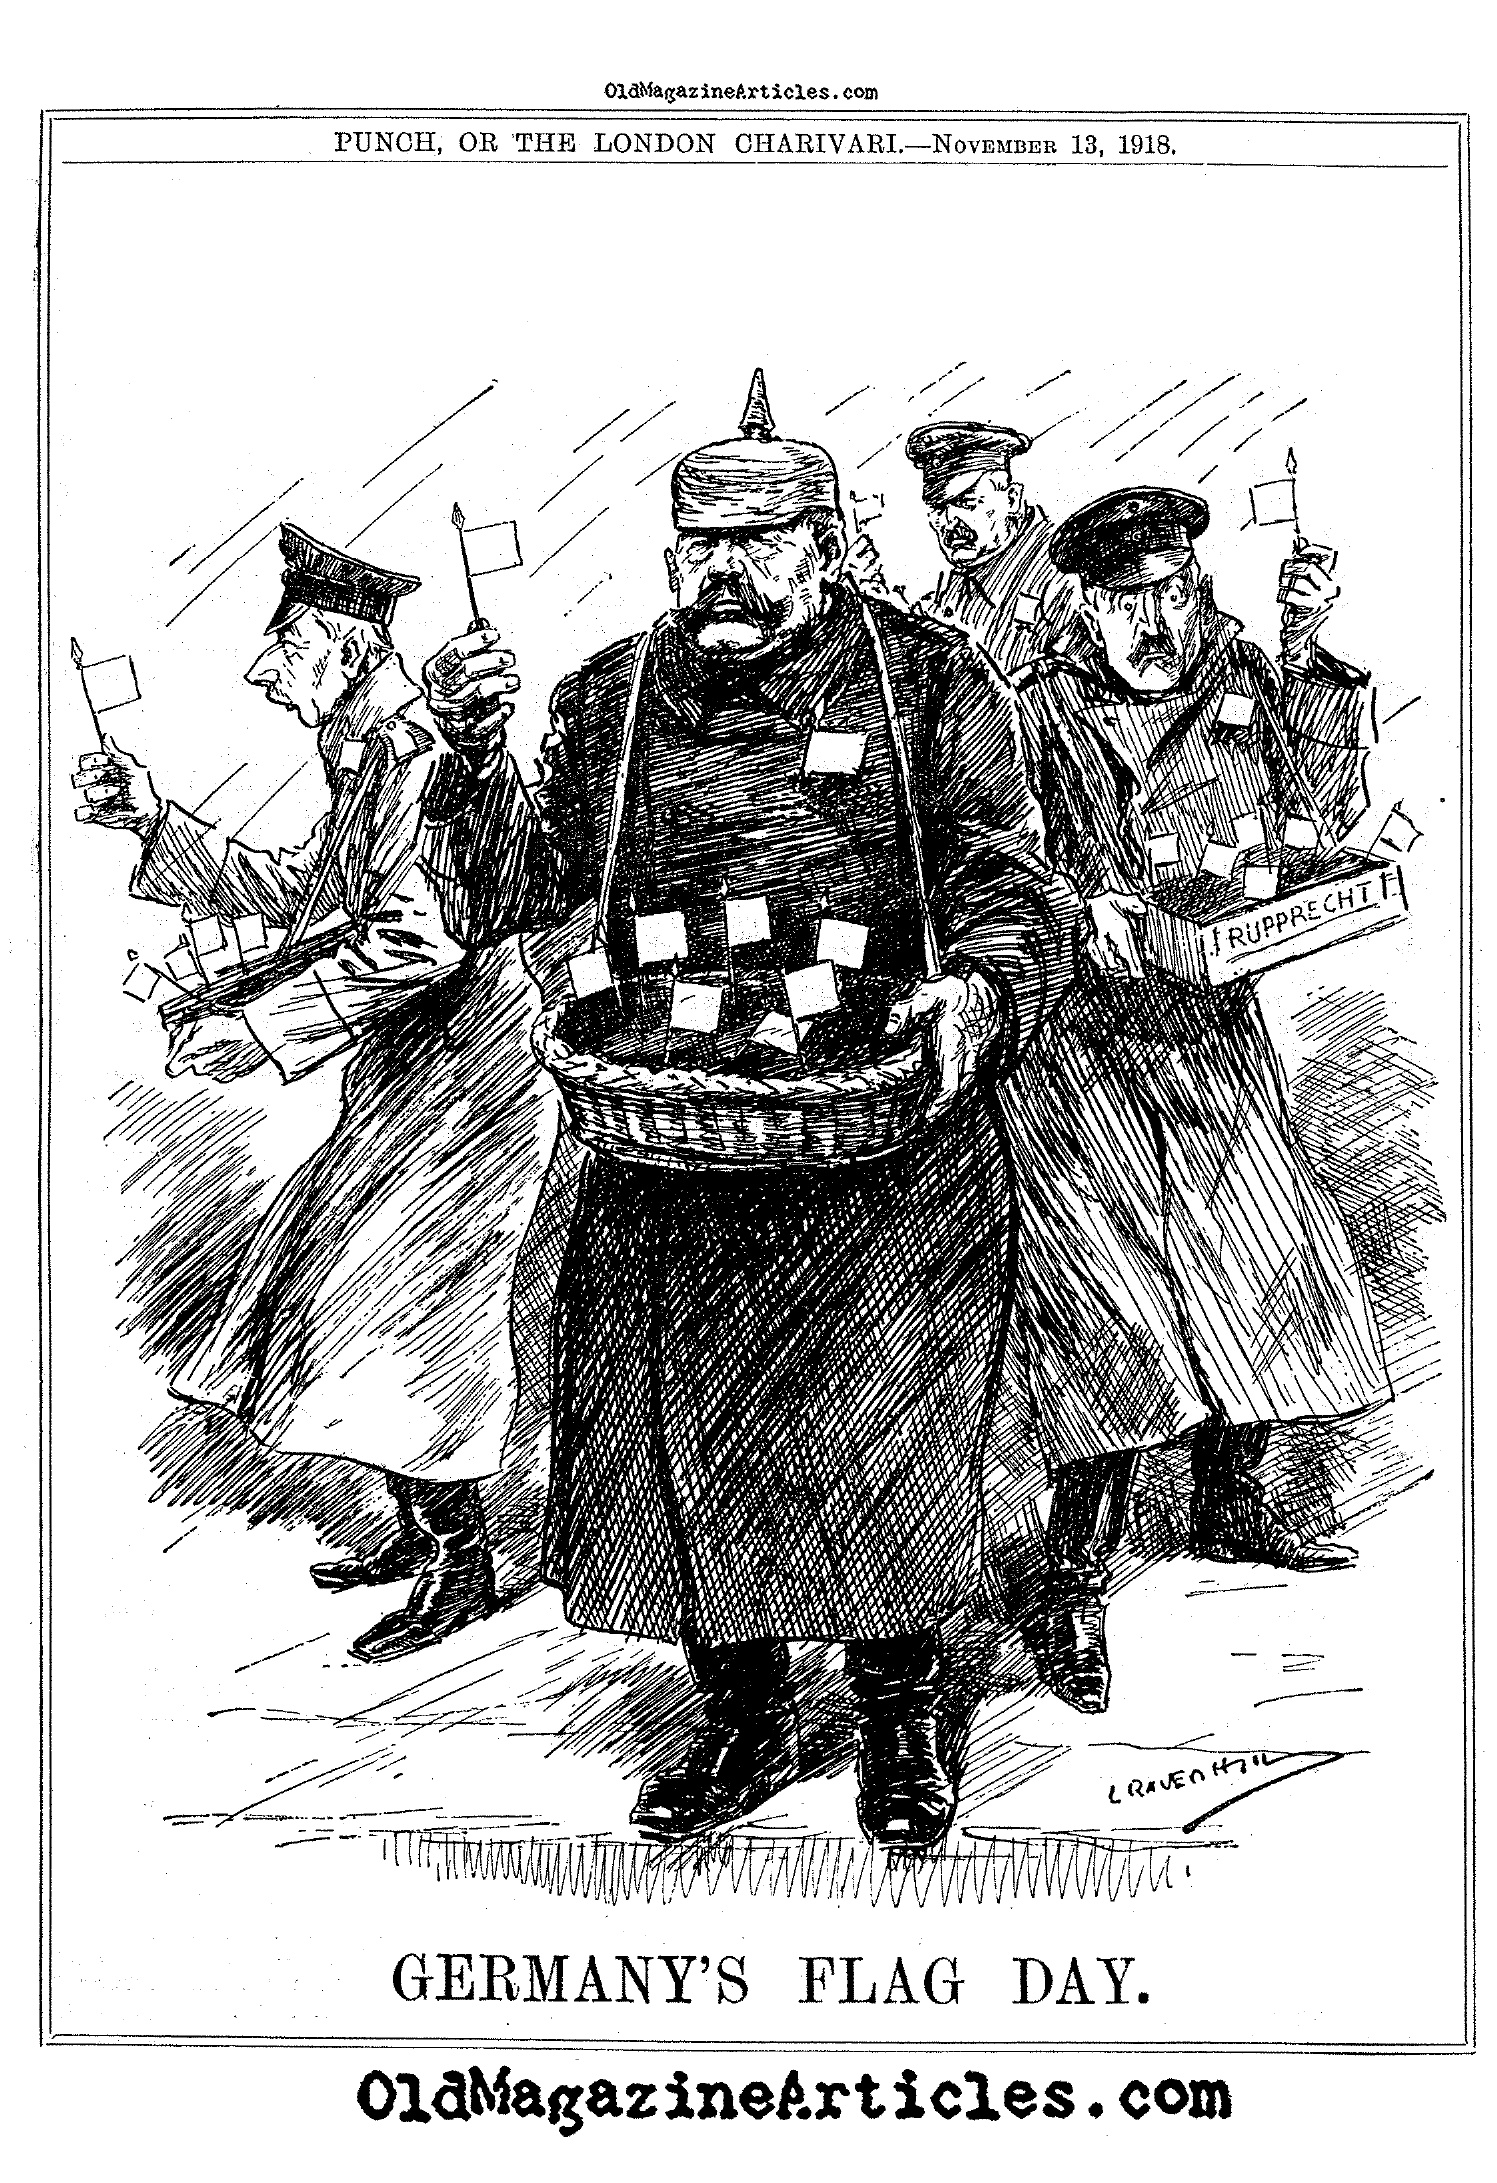 Flag Day in Germany  (Punch, 1918)